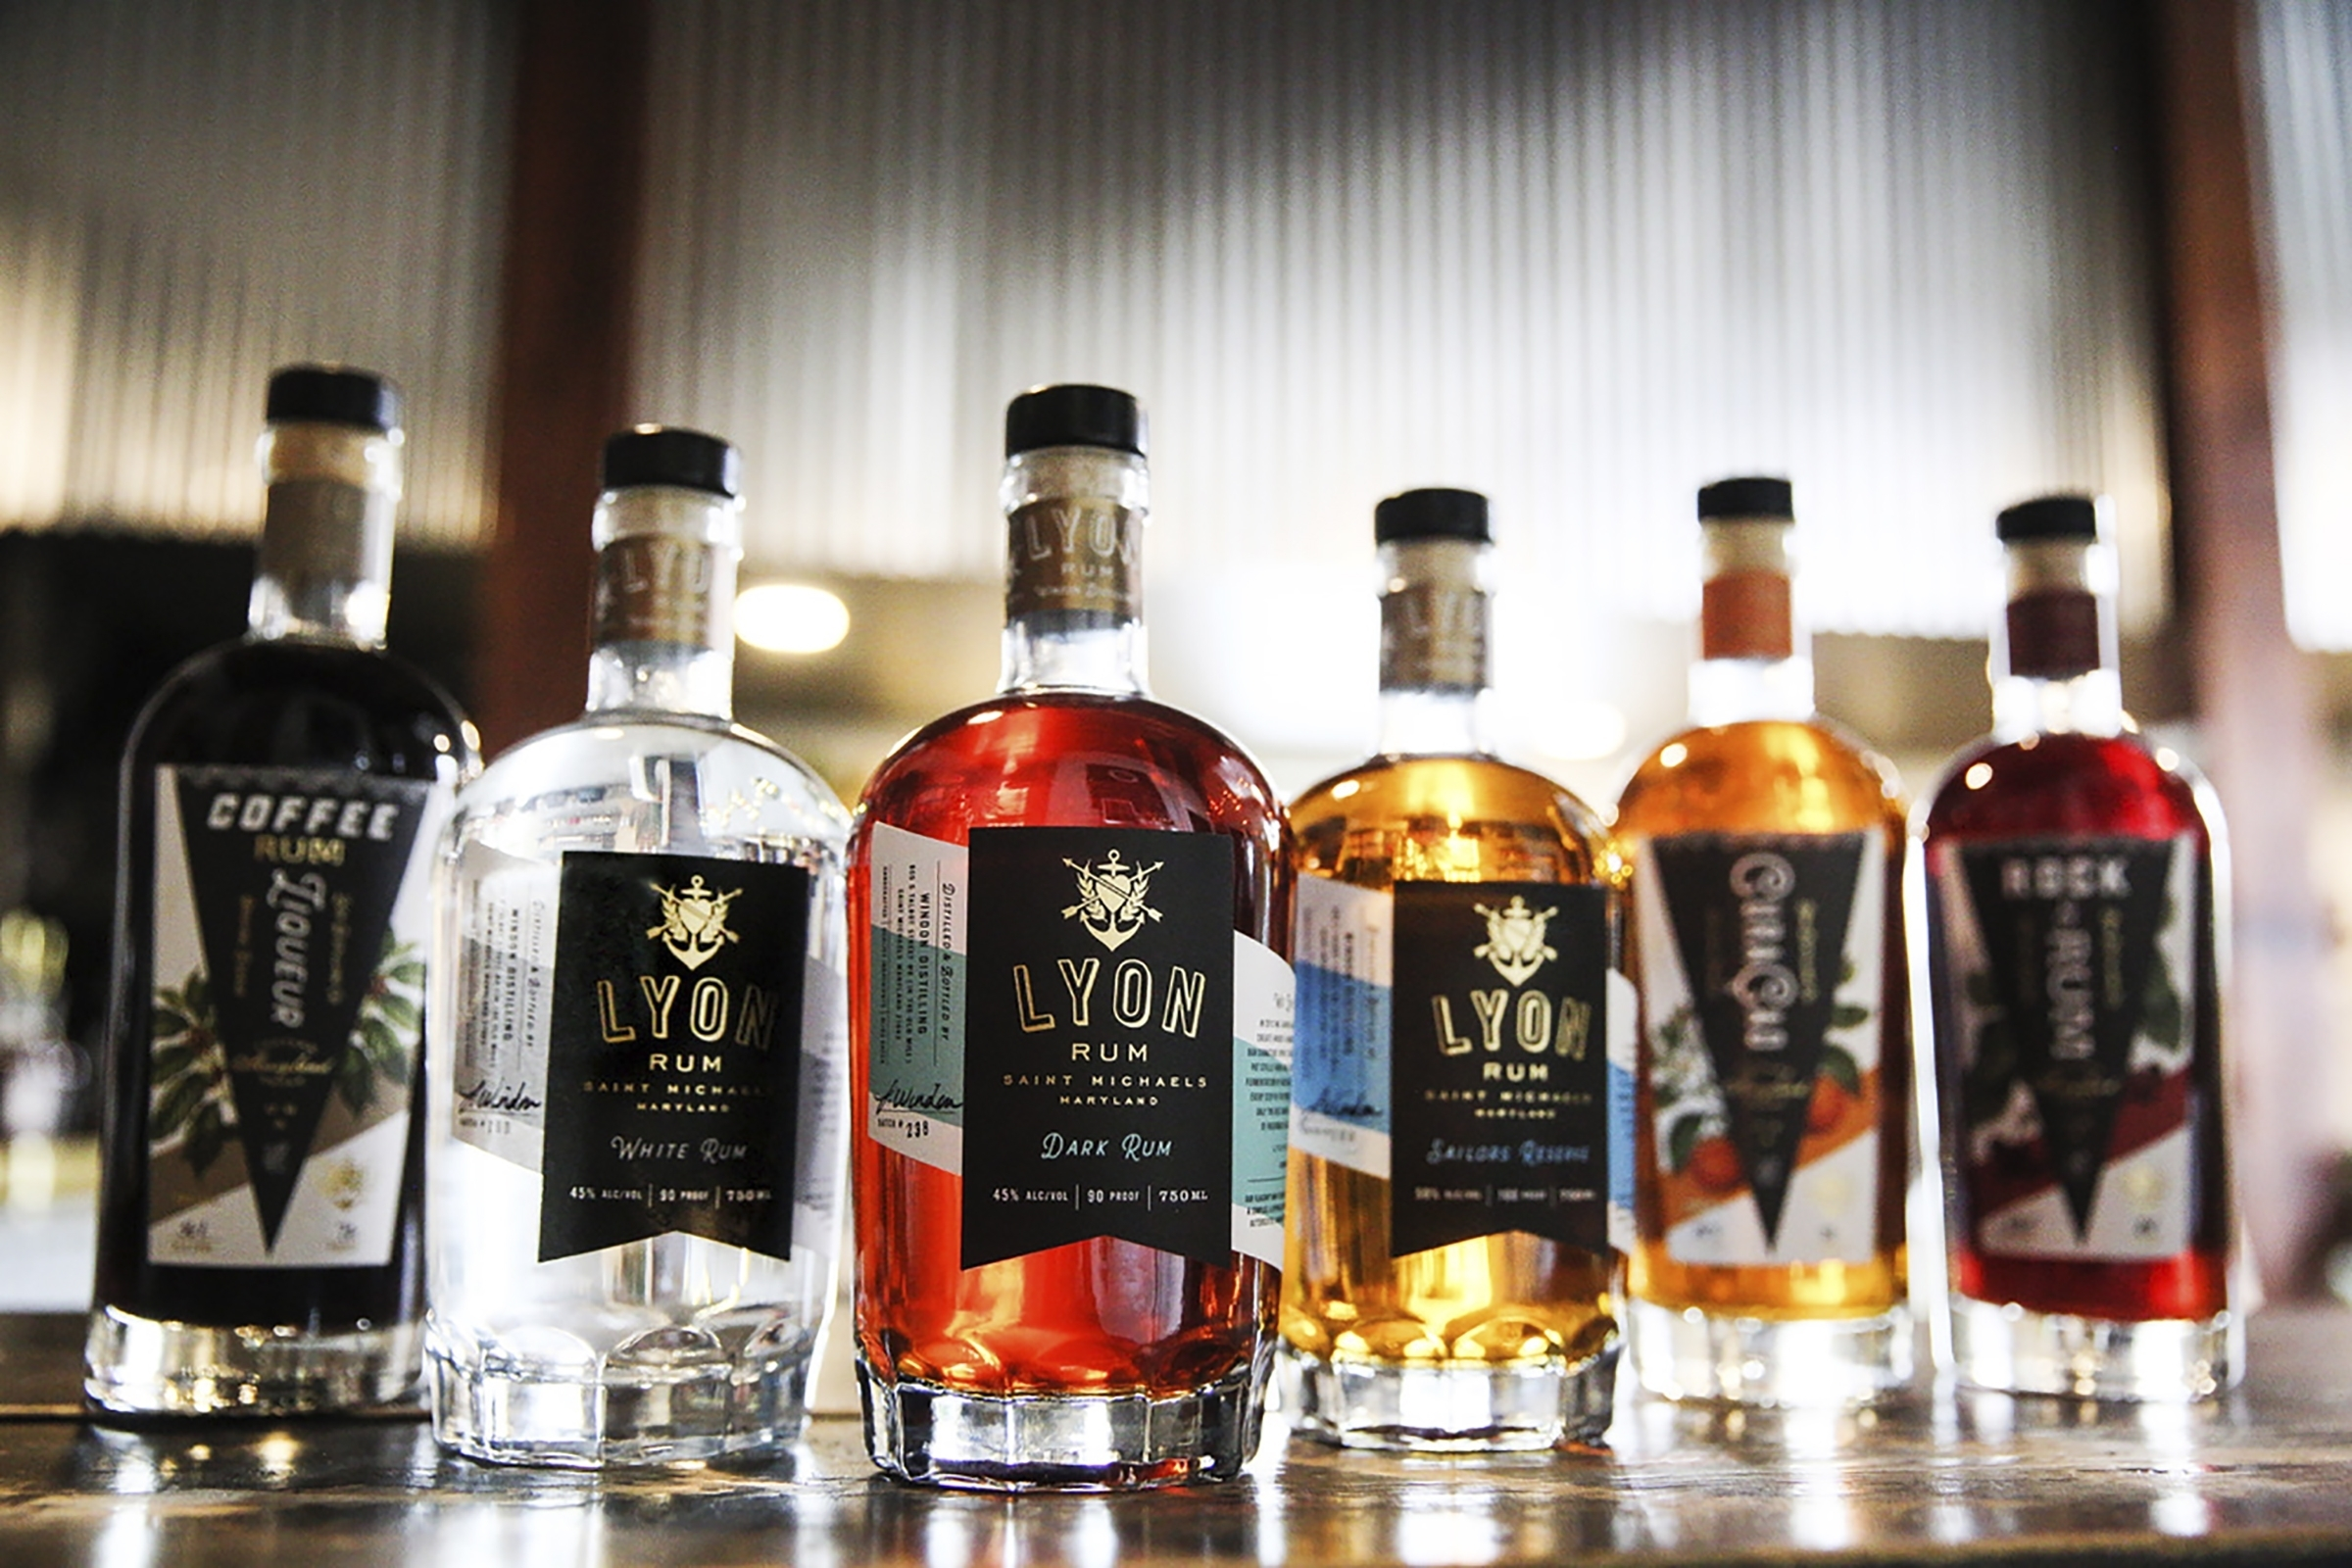 Bottles of alcohol, including Lyon rum, are displayed. Windon Distilling, a Maryland-based producer of Lyon Rum, is among the many craft distillers taking an economic hit from the COVID-19 pandemic.